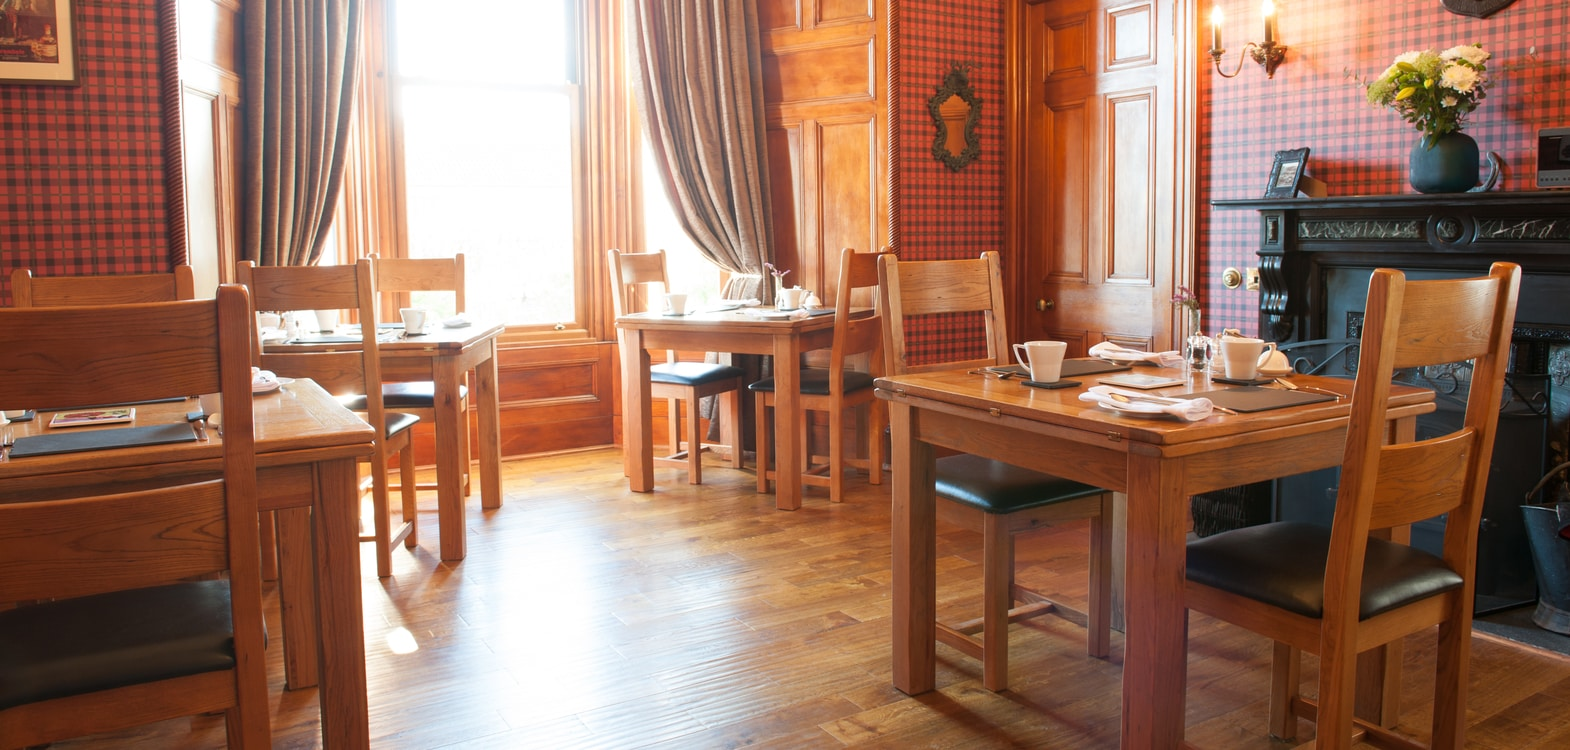 Wooden dining room tables laid up for breakfast at Strathallan Guest House in the Highlands of Scotland